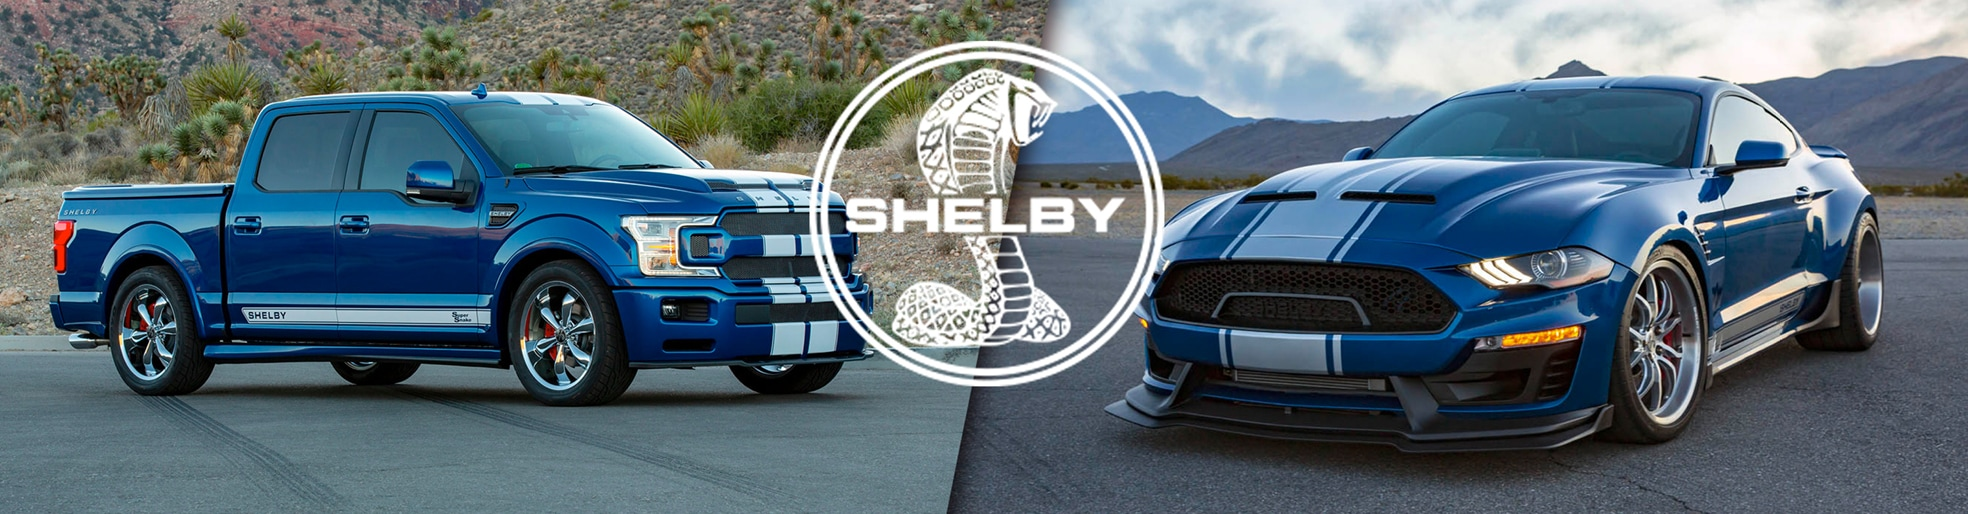 Shelby Trucks Performance